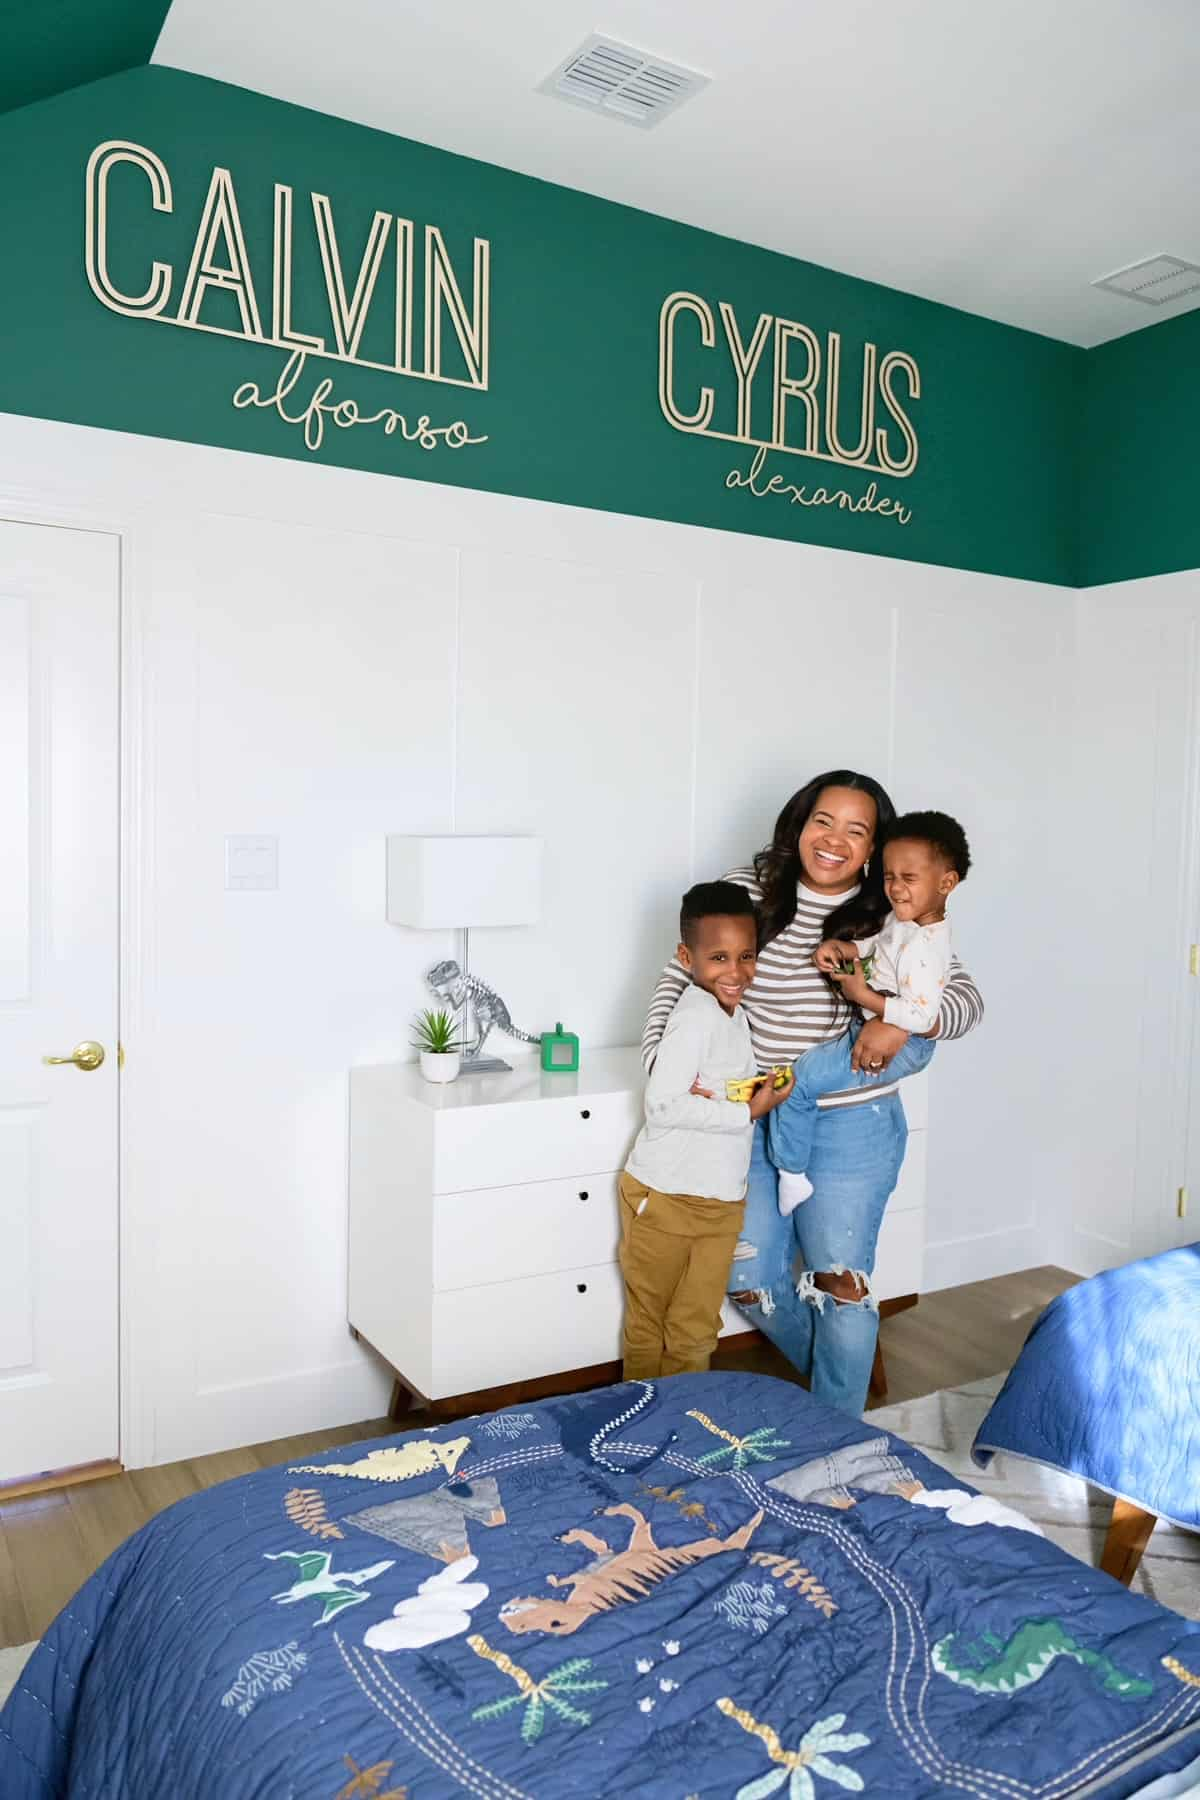 Bedroom Paint Colors by popular Dallas life and style blog, Glamorous Versatility: image of a mom and her two boys standing together in a room decorated with a white dresser, dinosaur bedding, and wall name decals.